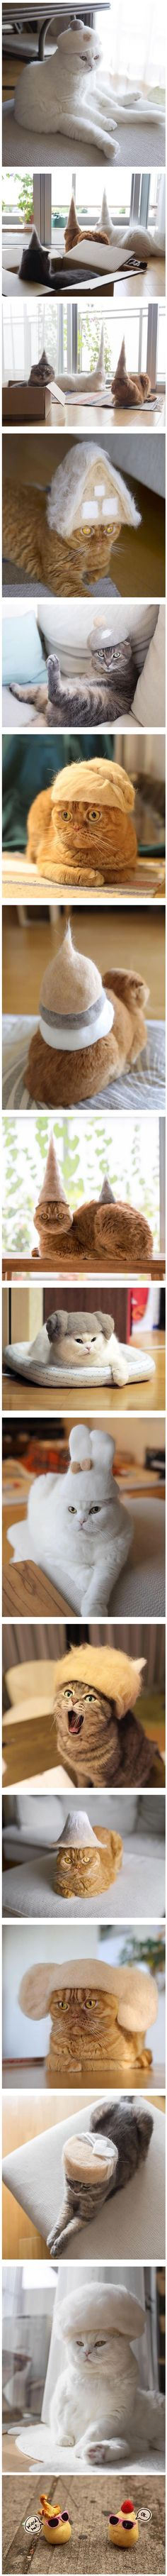 Photographer Makes Hats For His Cats Using Their Own Fluff ~ seriously lol 😂😂😂